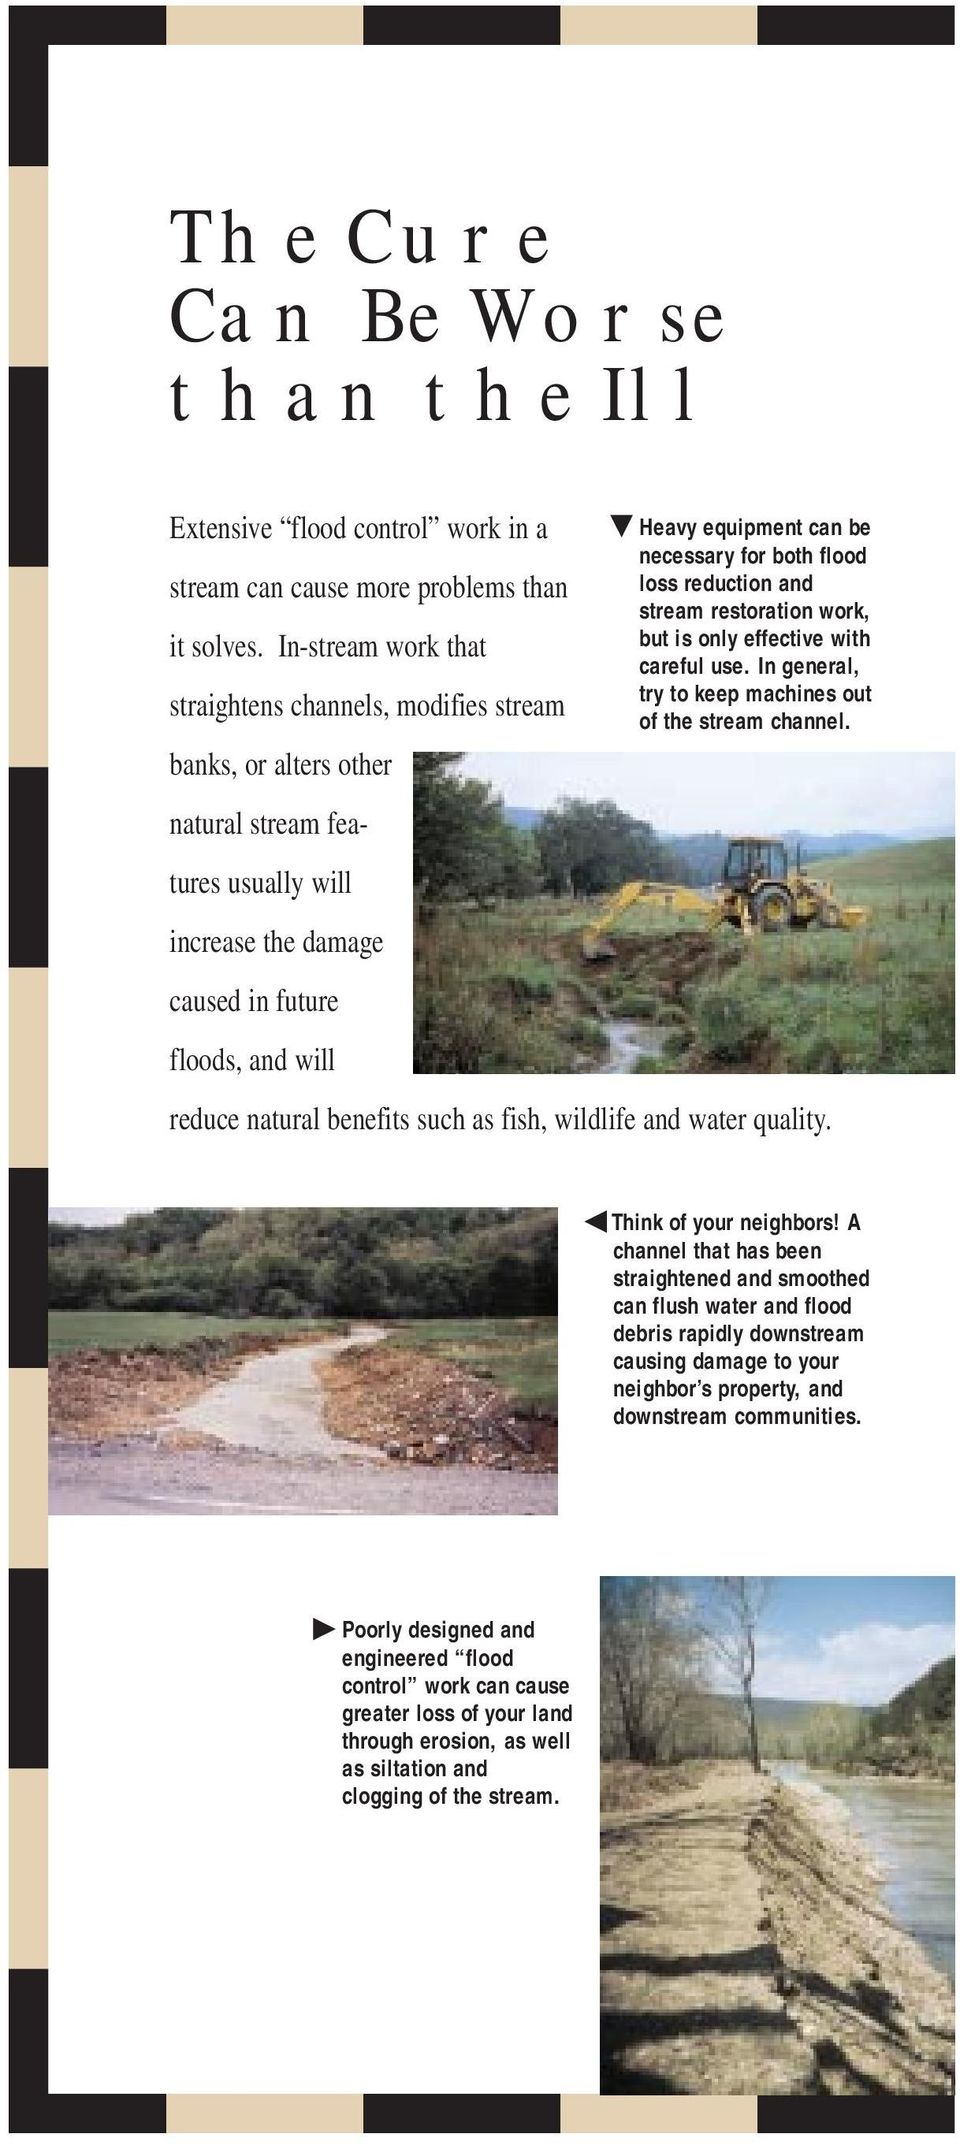 such as fish, wildlife and water quality. Heavy equipment can be necessary for both flood loss reduction and stream restoration work, but is only effective with careful use.